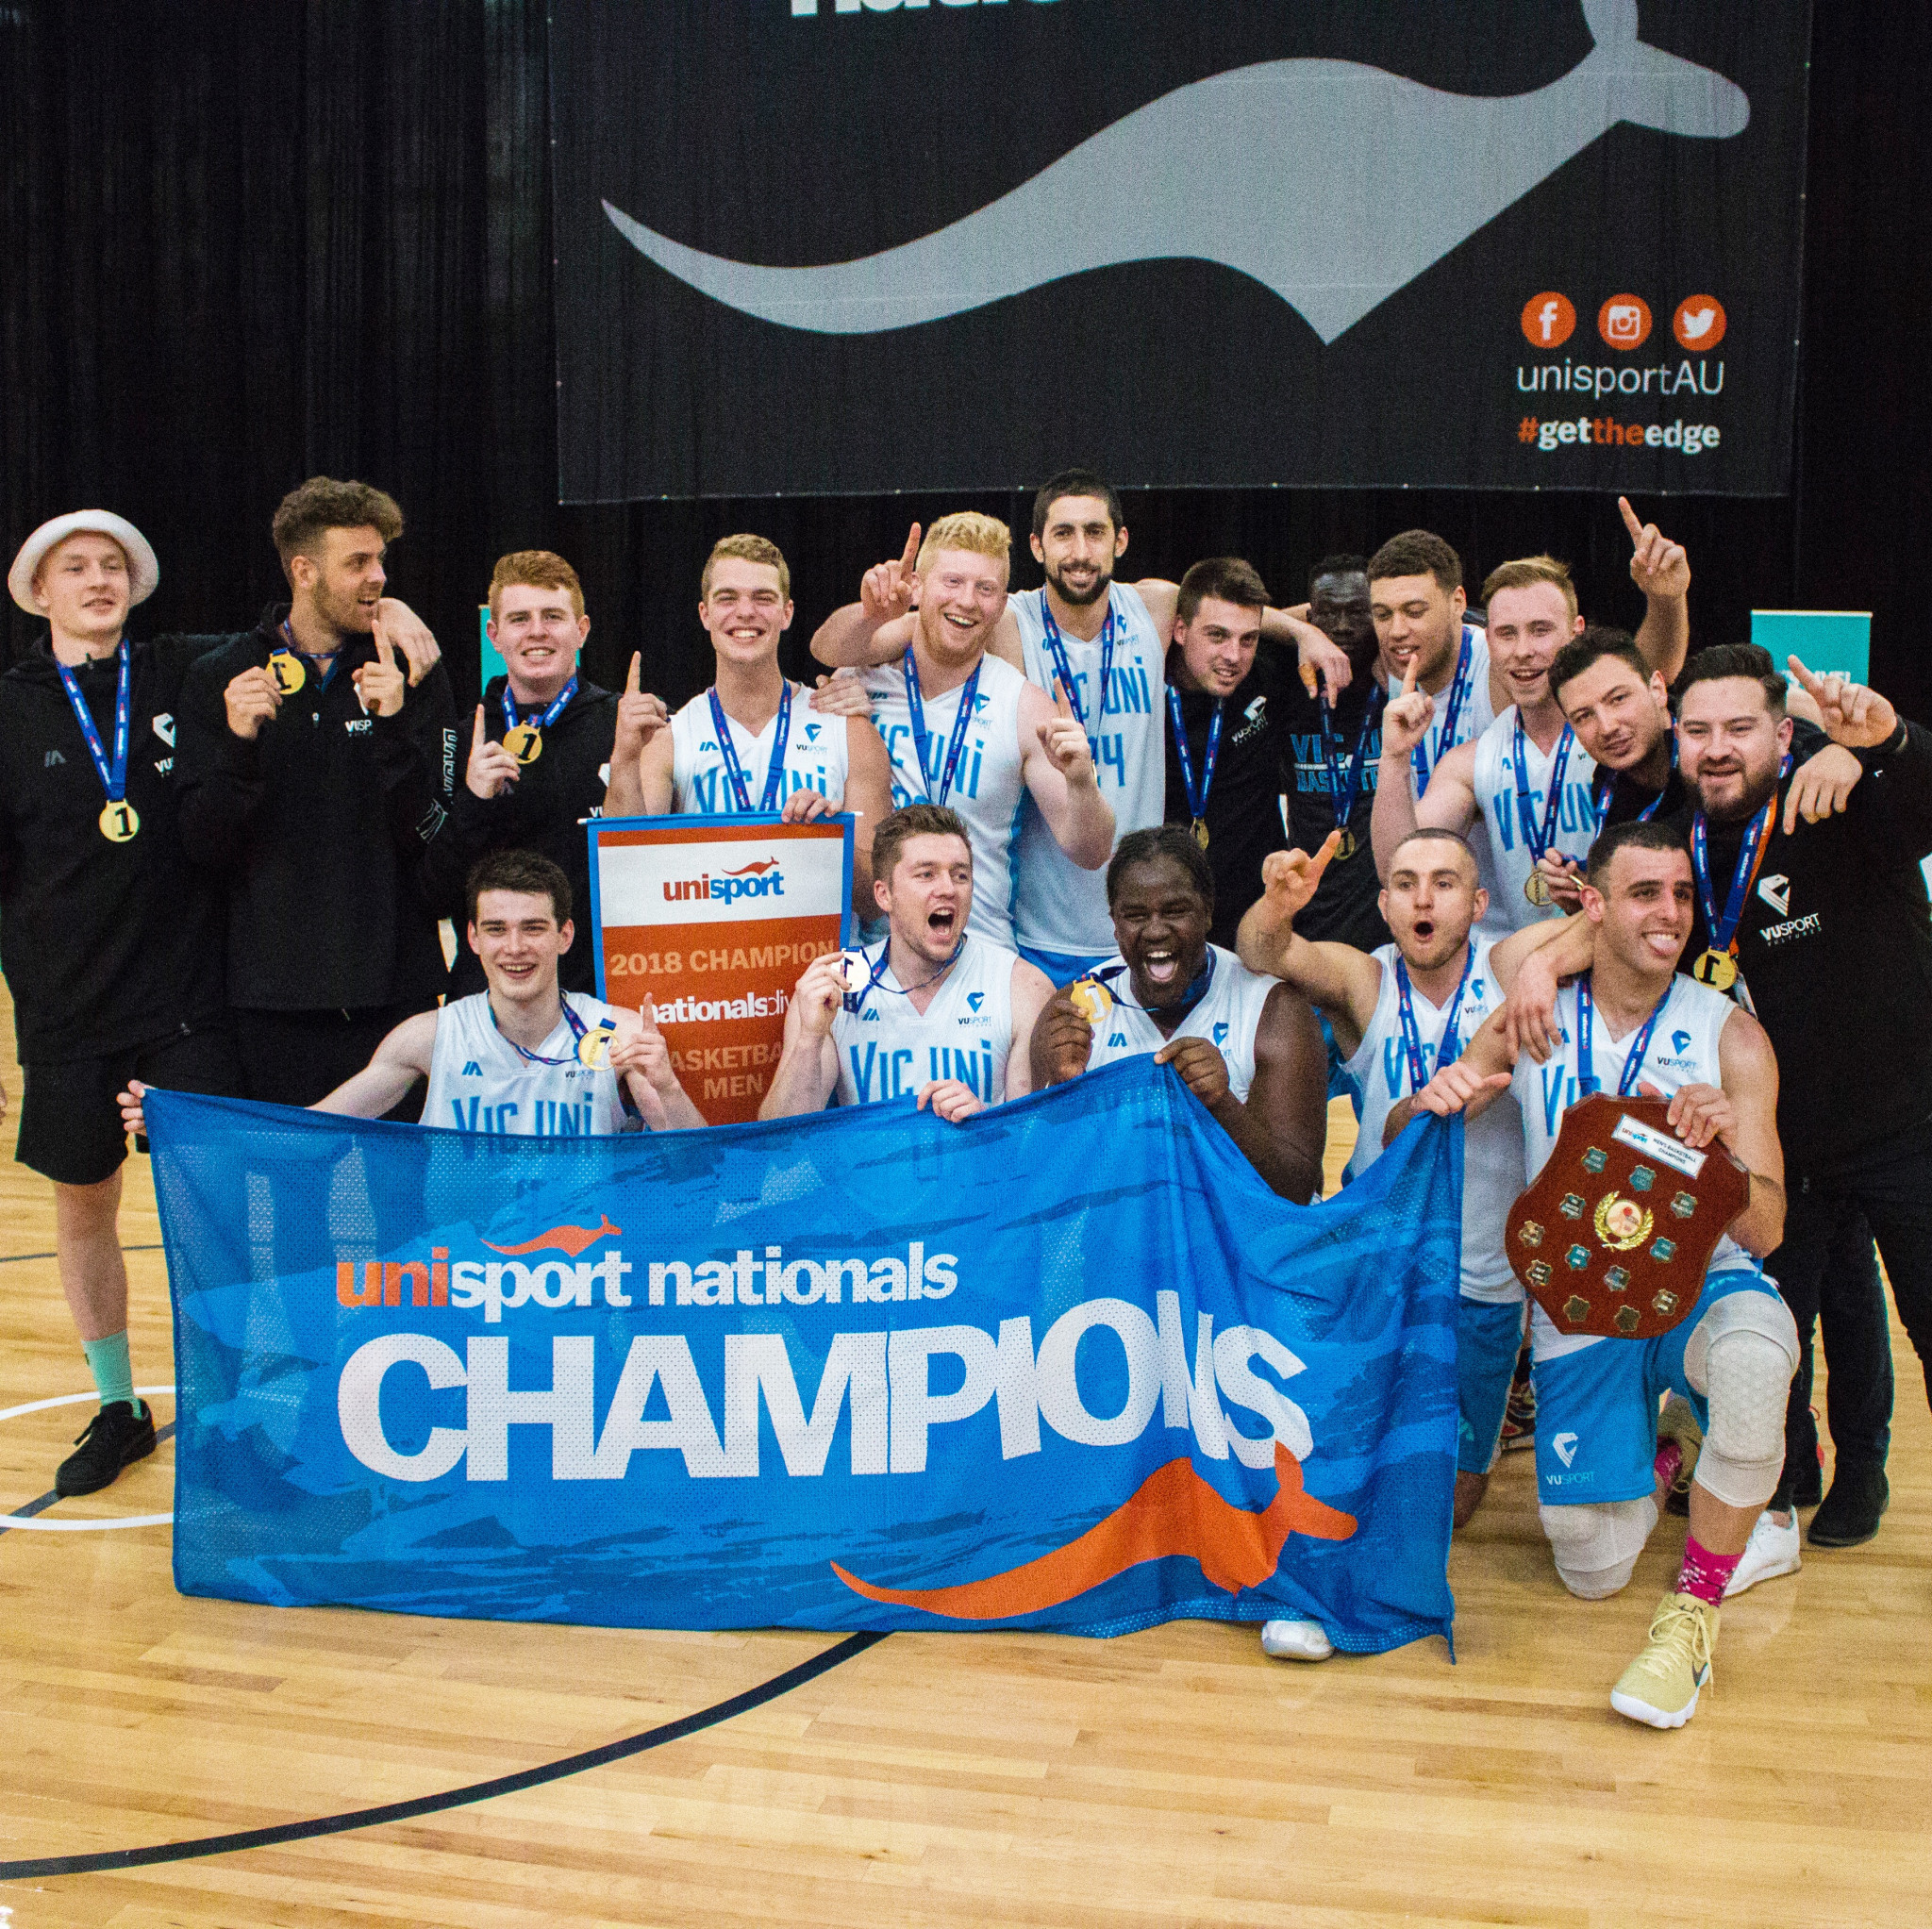 UniSport Australia Nationals return to Gold Coast for 2021